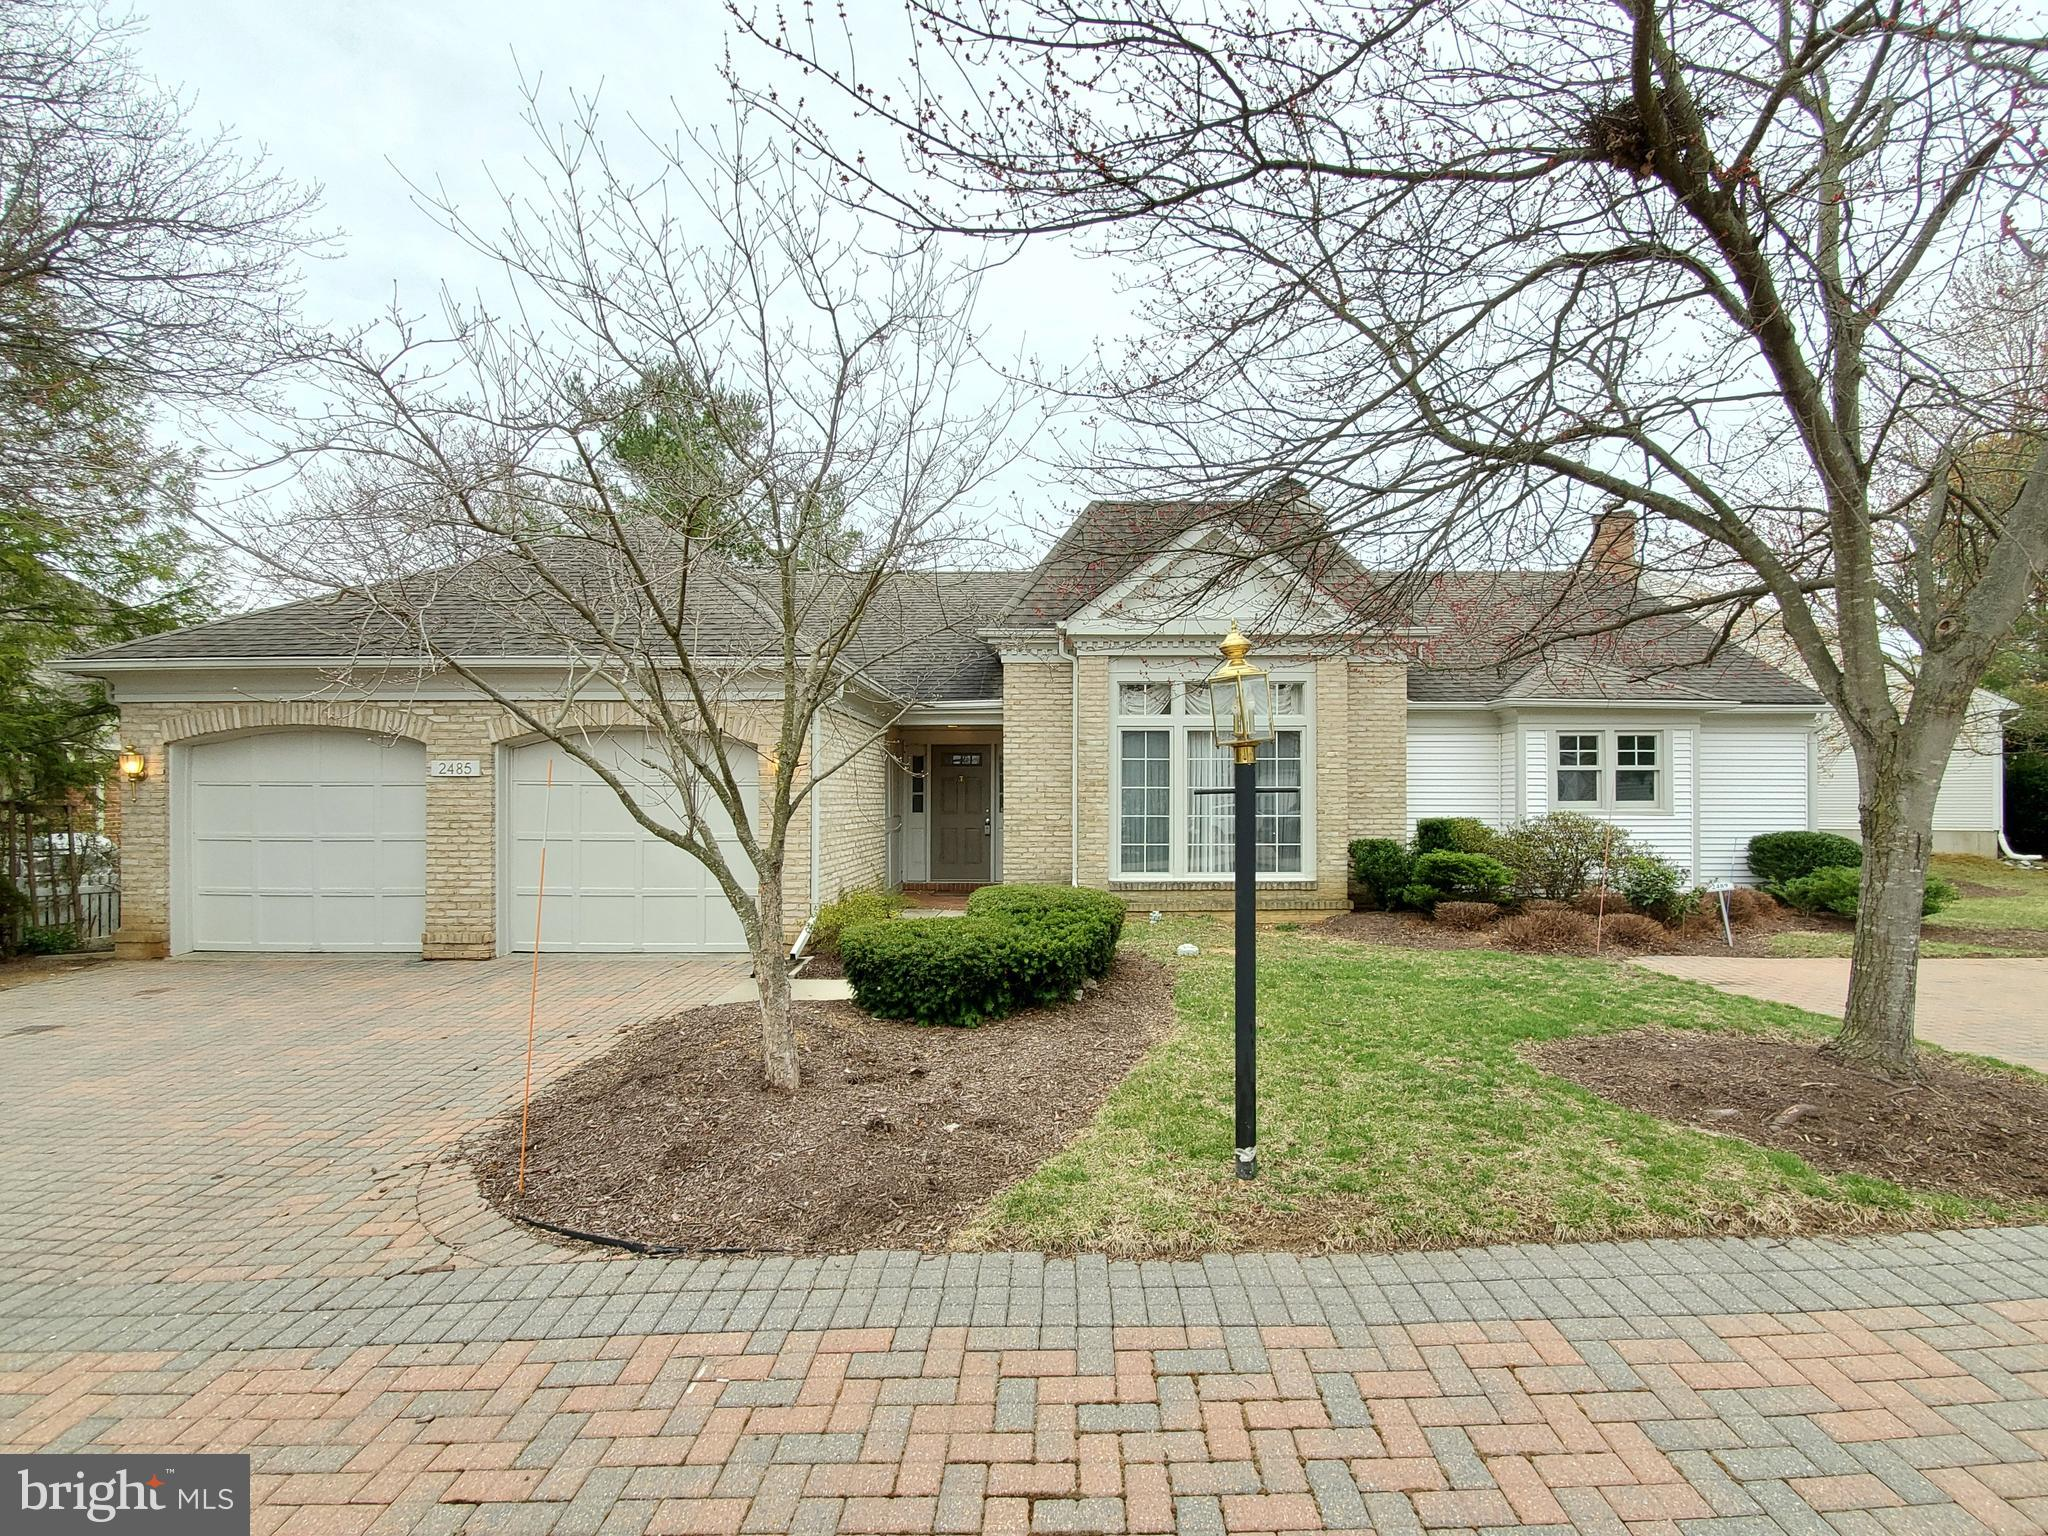 2485 5 Shillings Rd, Frederick, MD, 21701